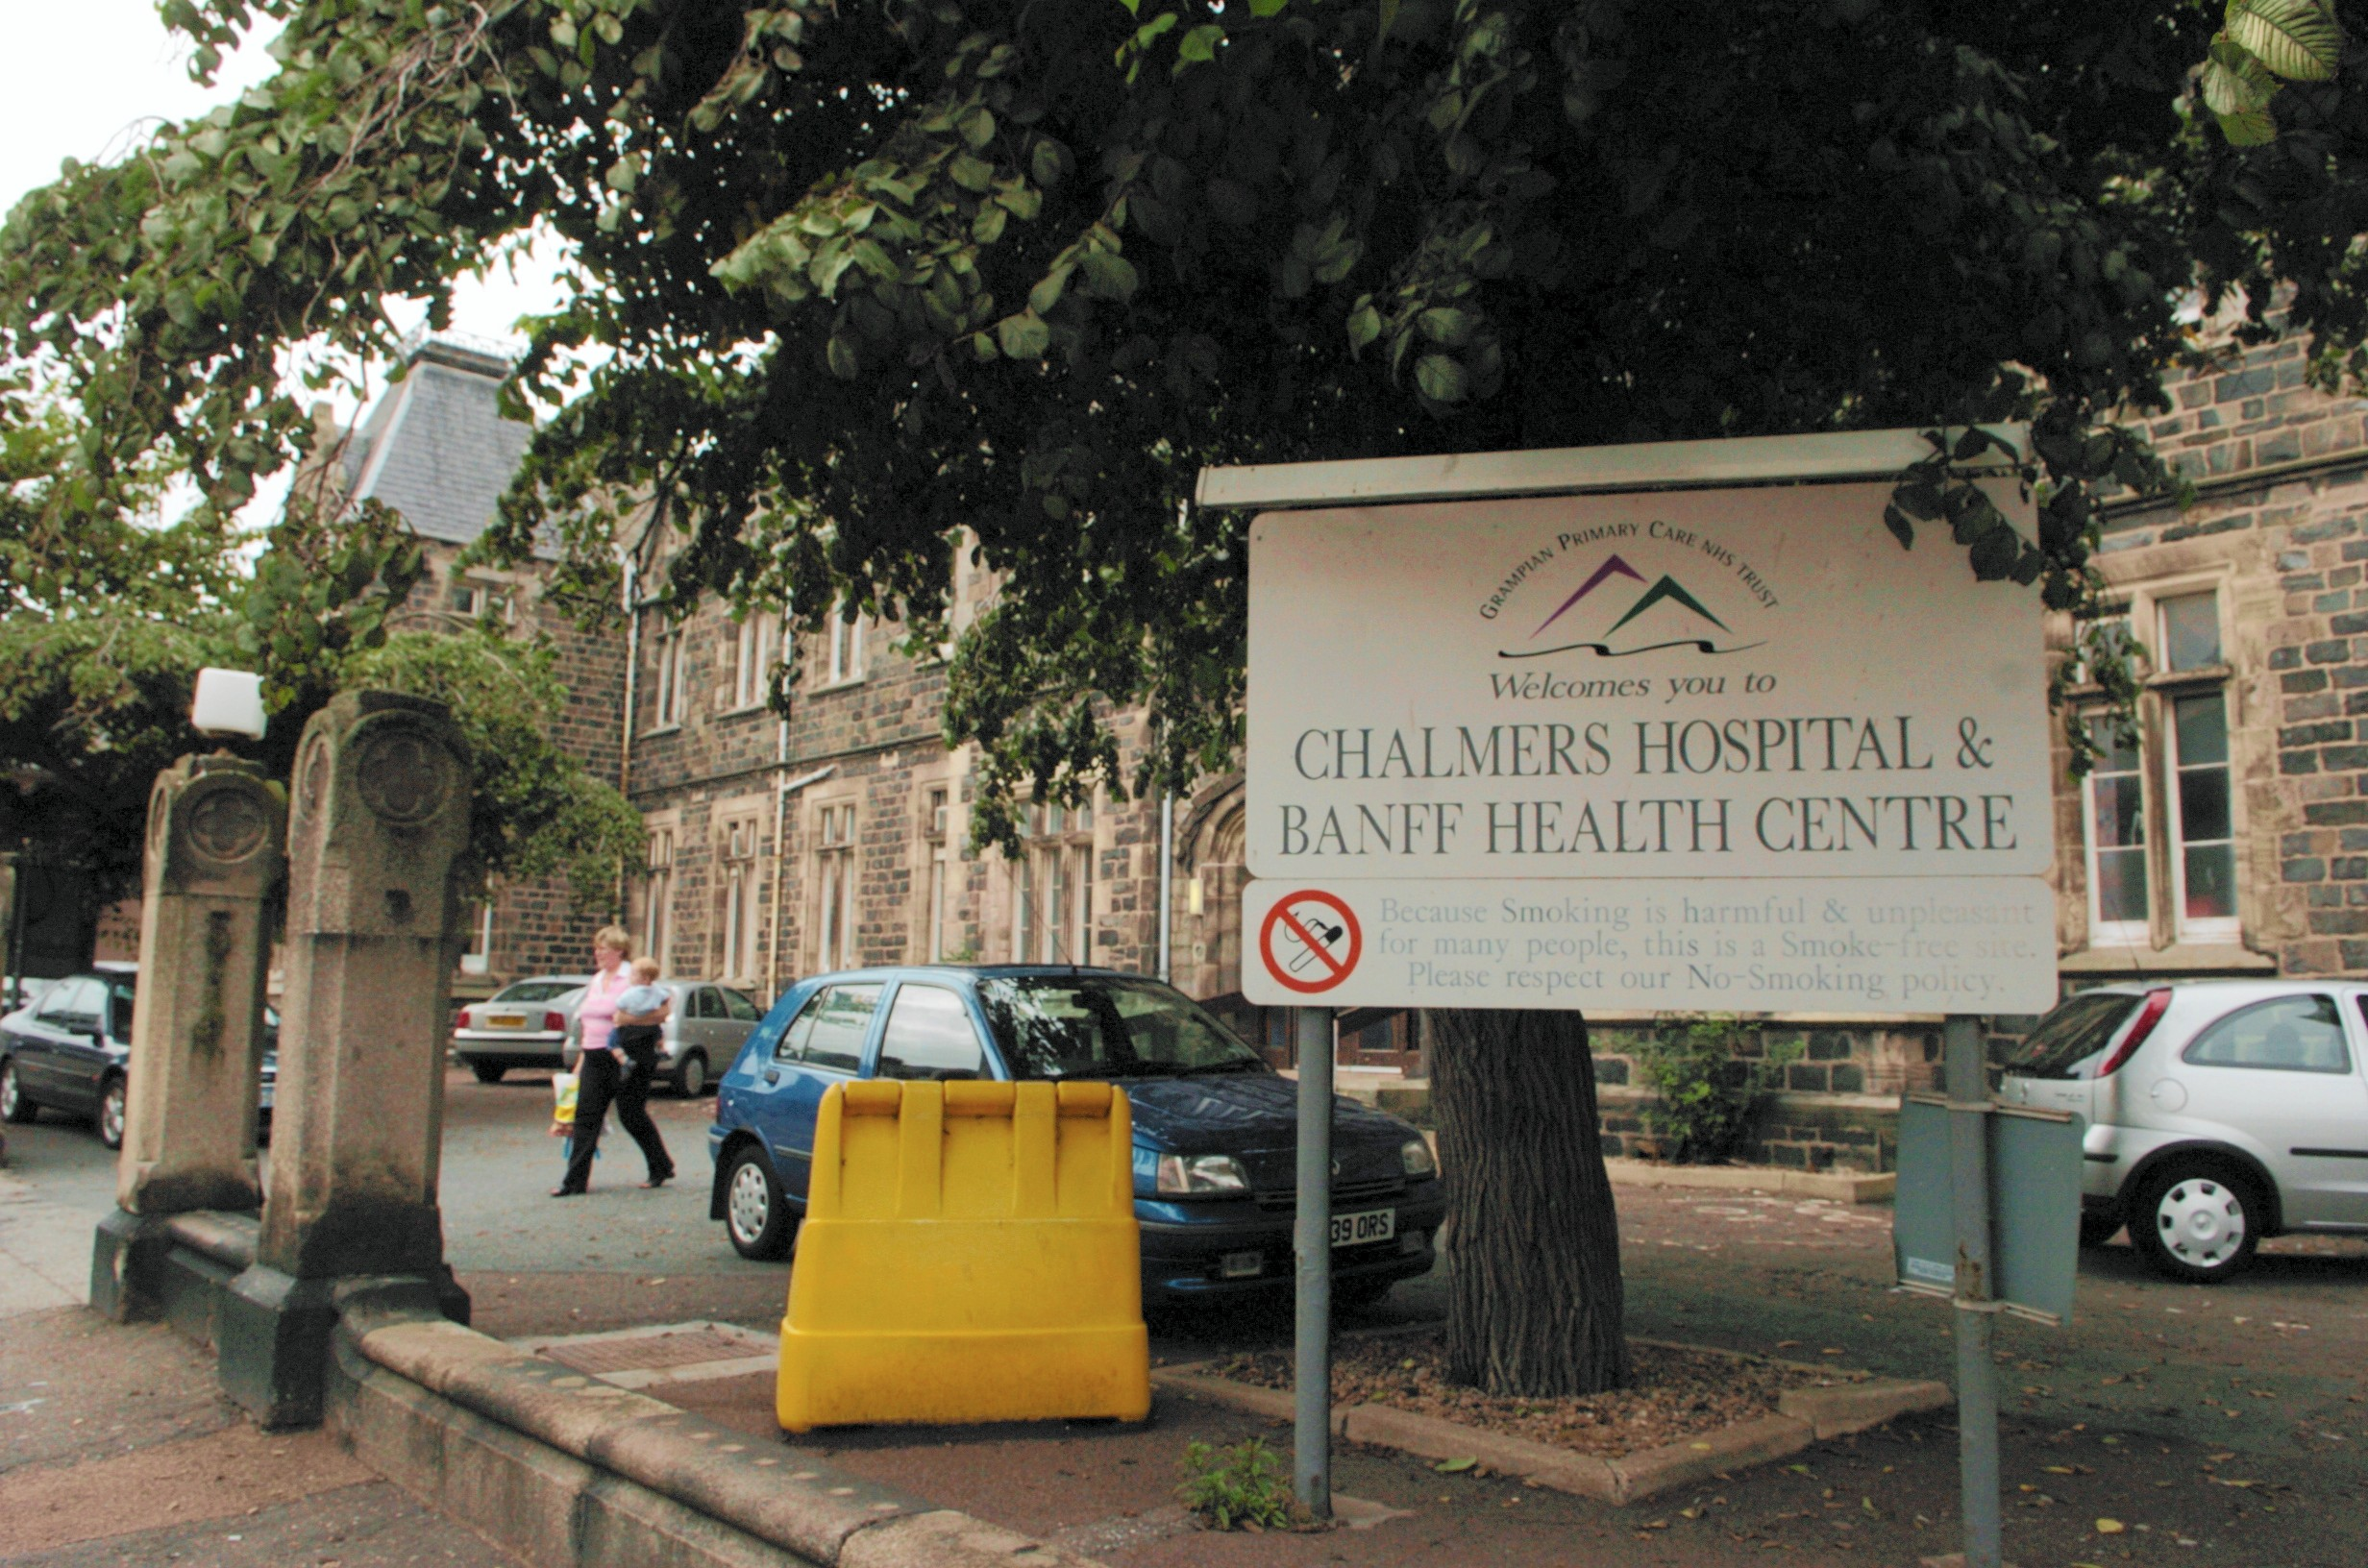 Chalmers Hospital and Banff Health centre